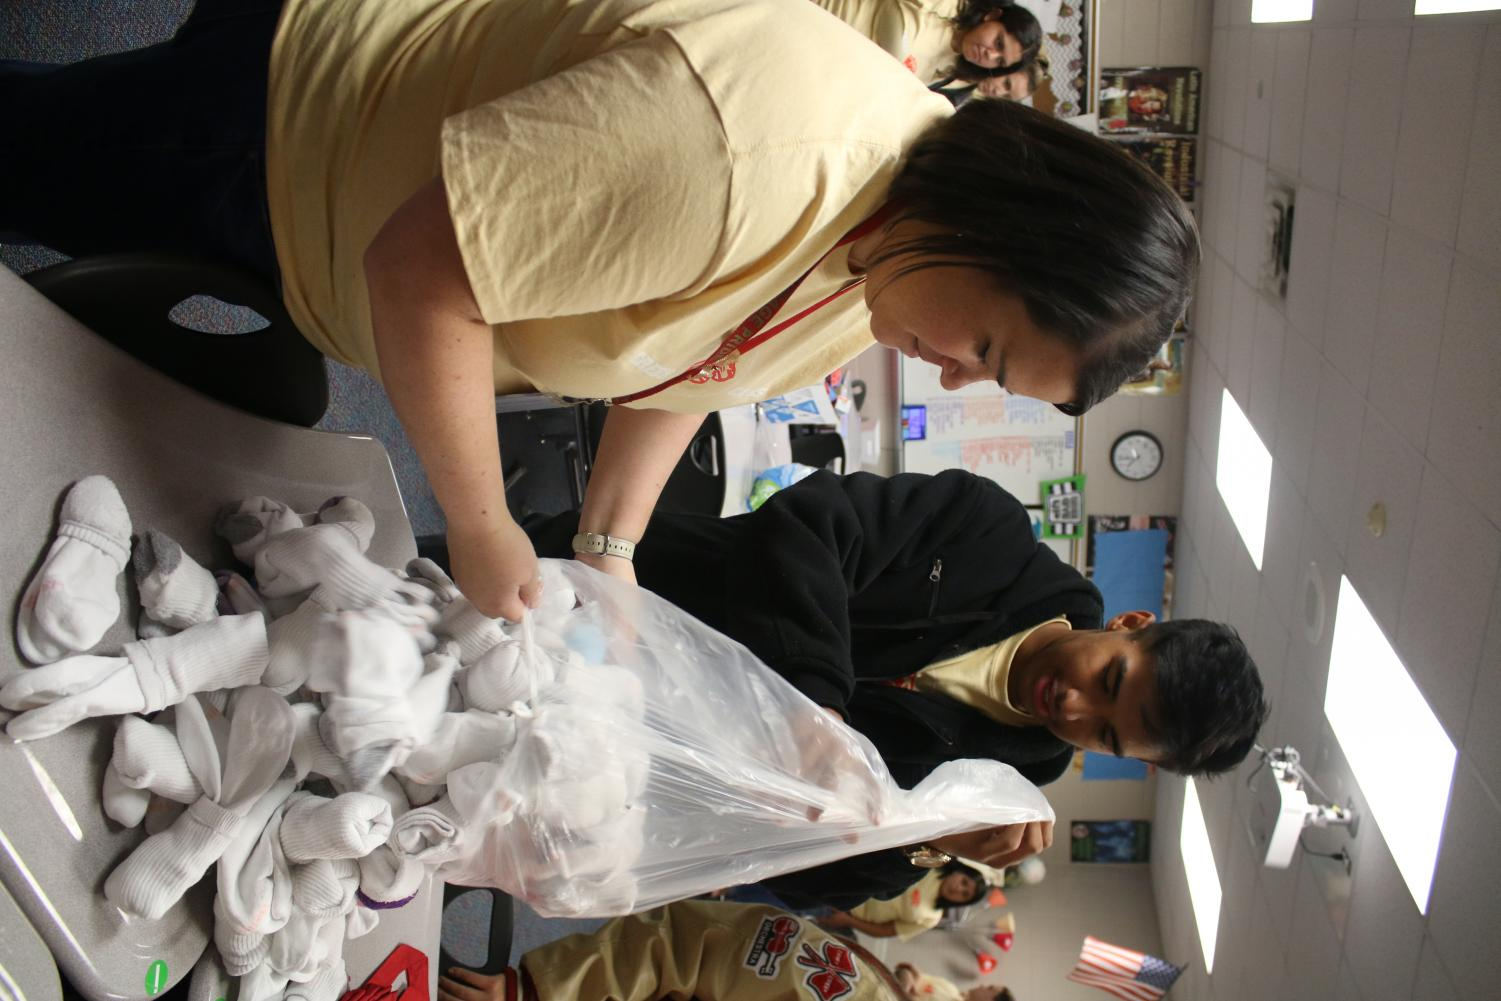 CARING. Sarah Dudley, StuCo co-adviser, and junior Ivan Sanchez, president of StuCo, empty out a donated bag of socks